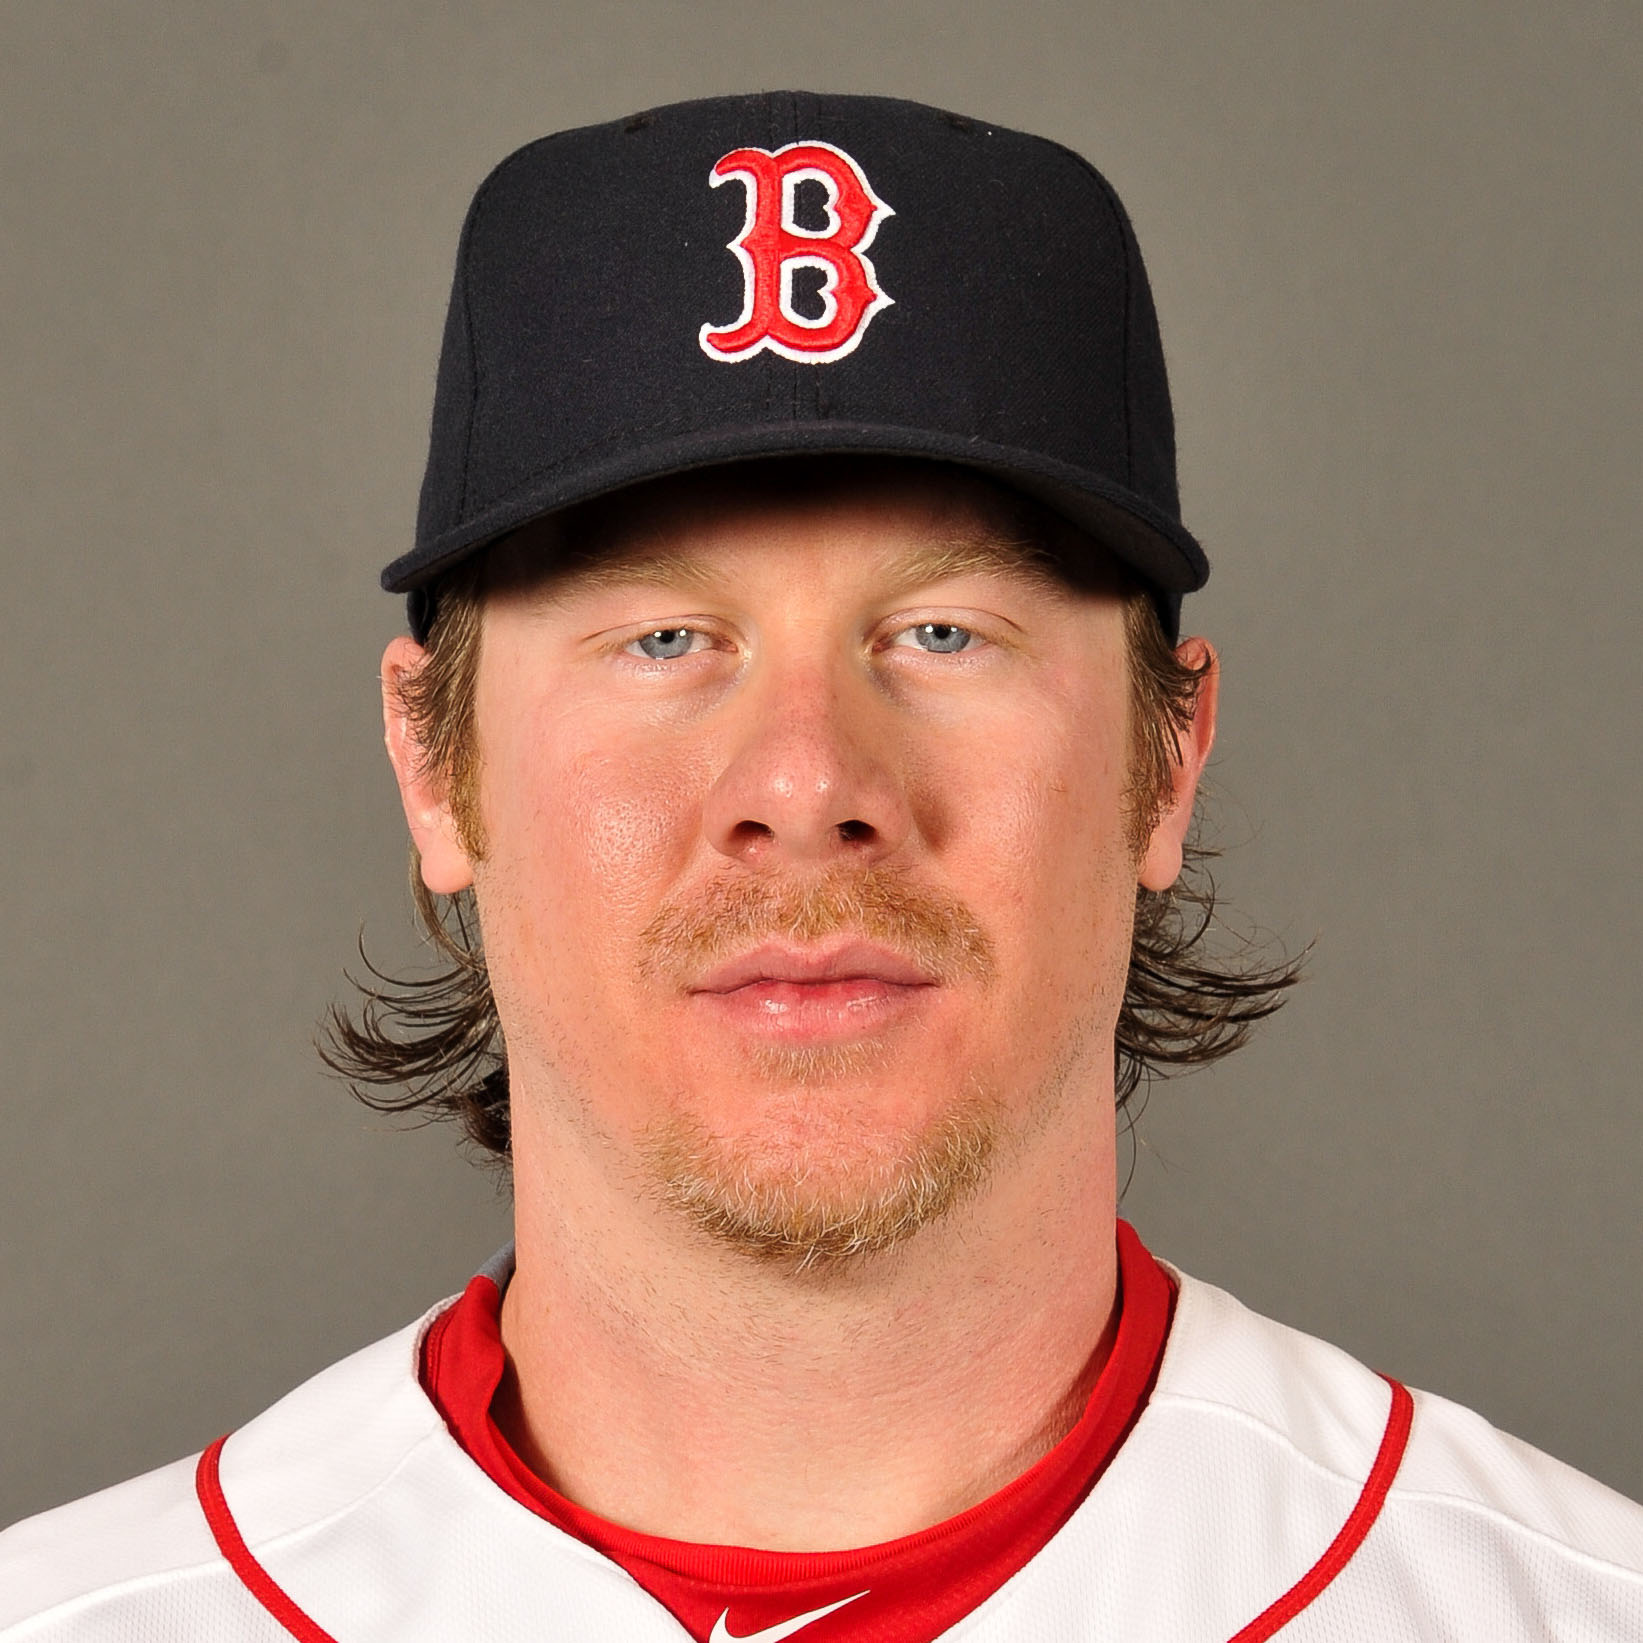 Ryan Hanigan Headshot